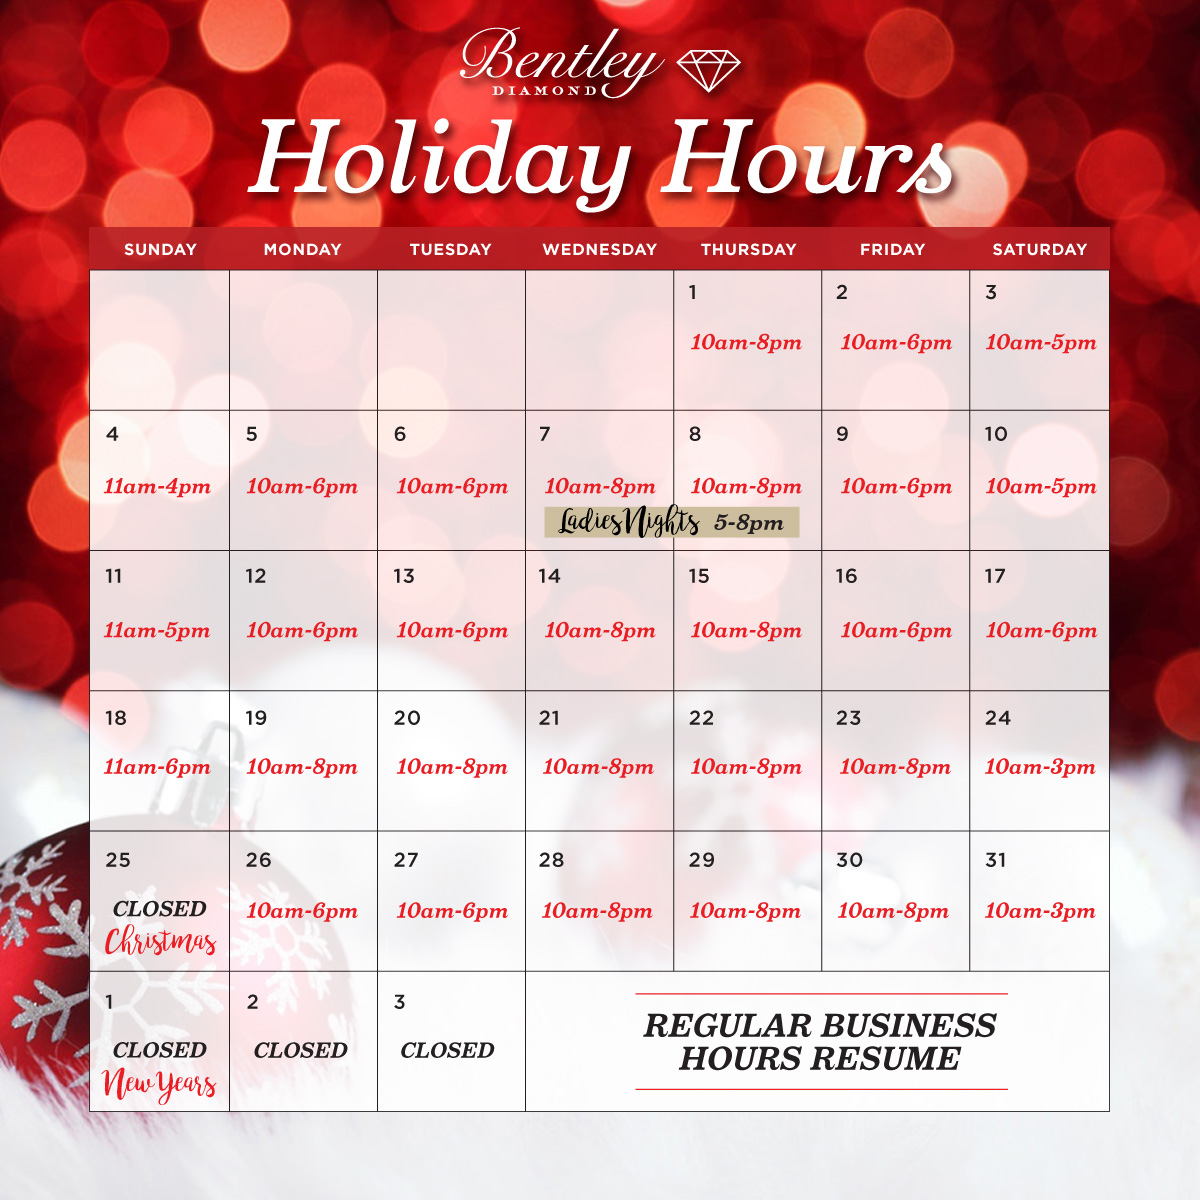 Bentley Diamond - Holiday Hours 2016